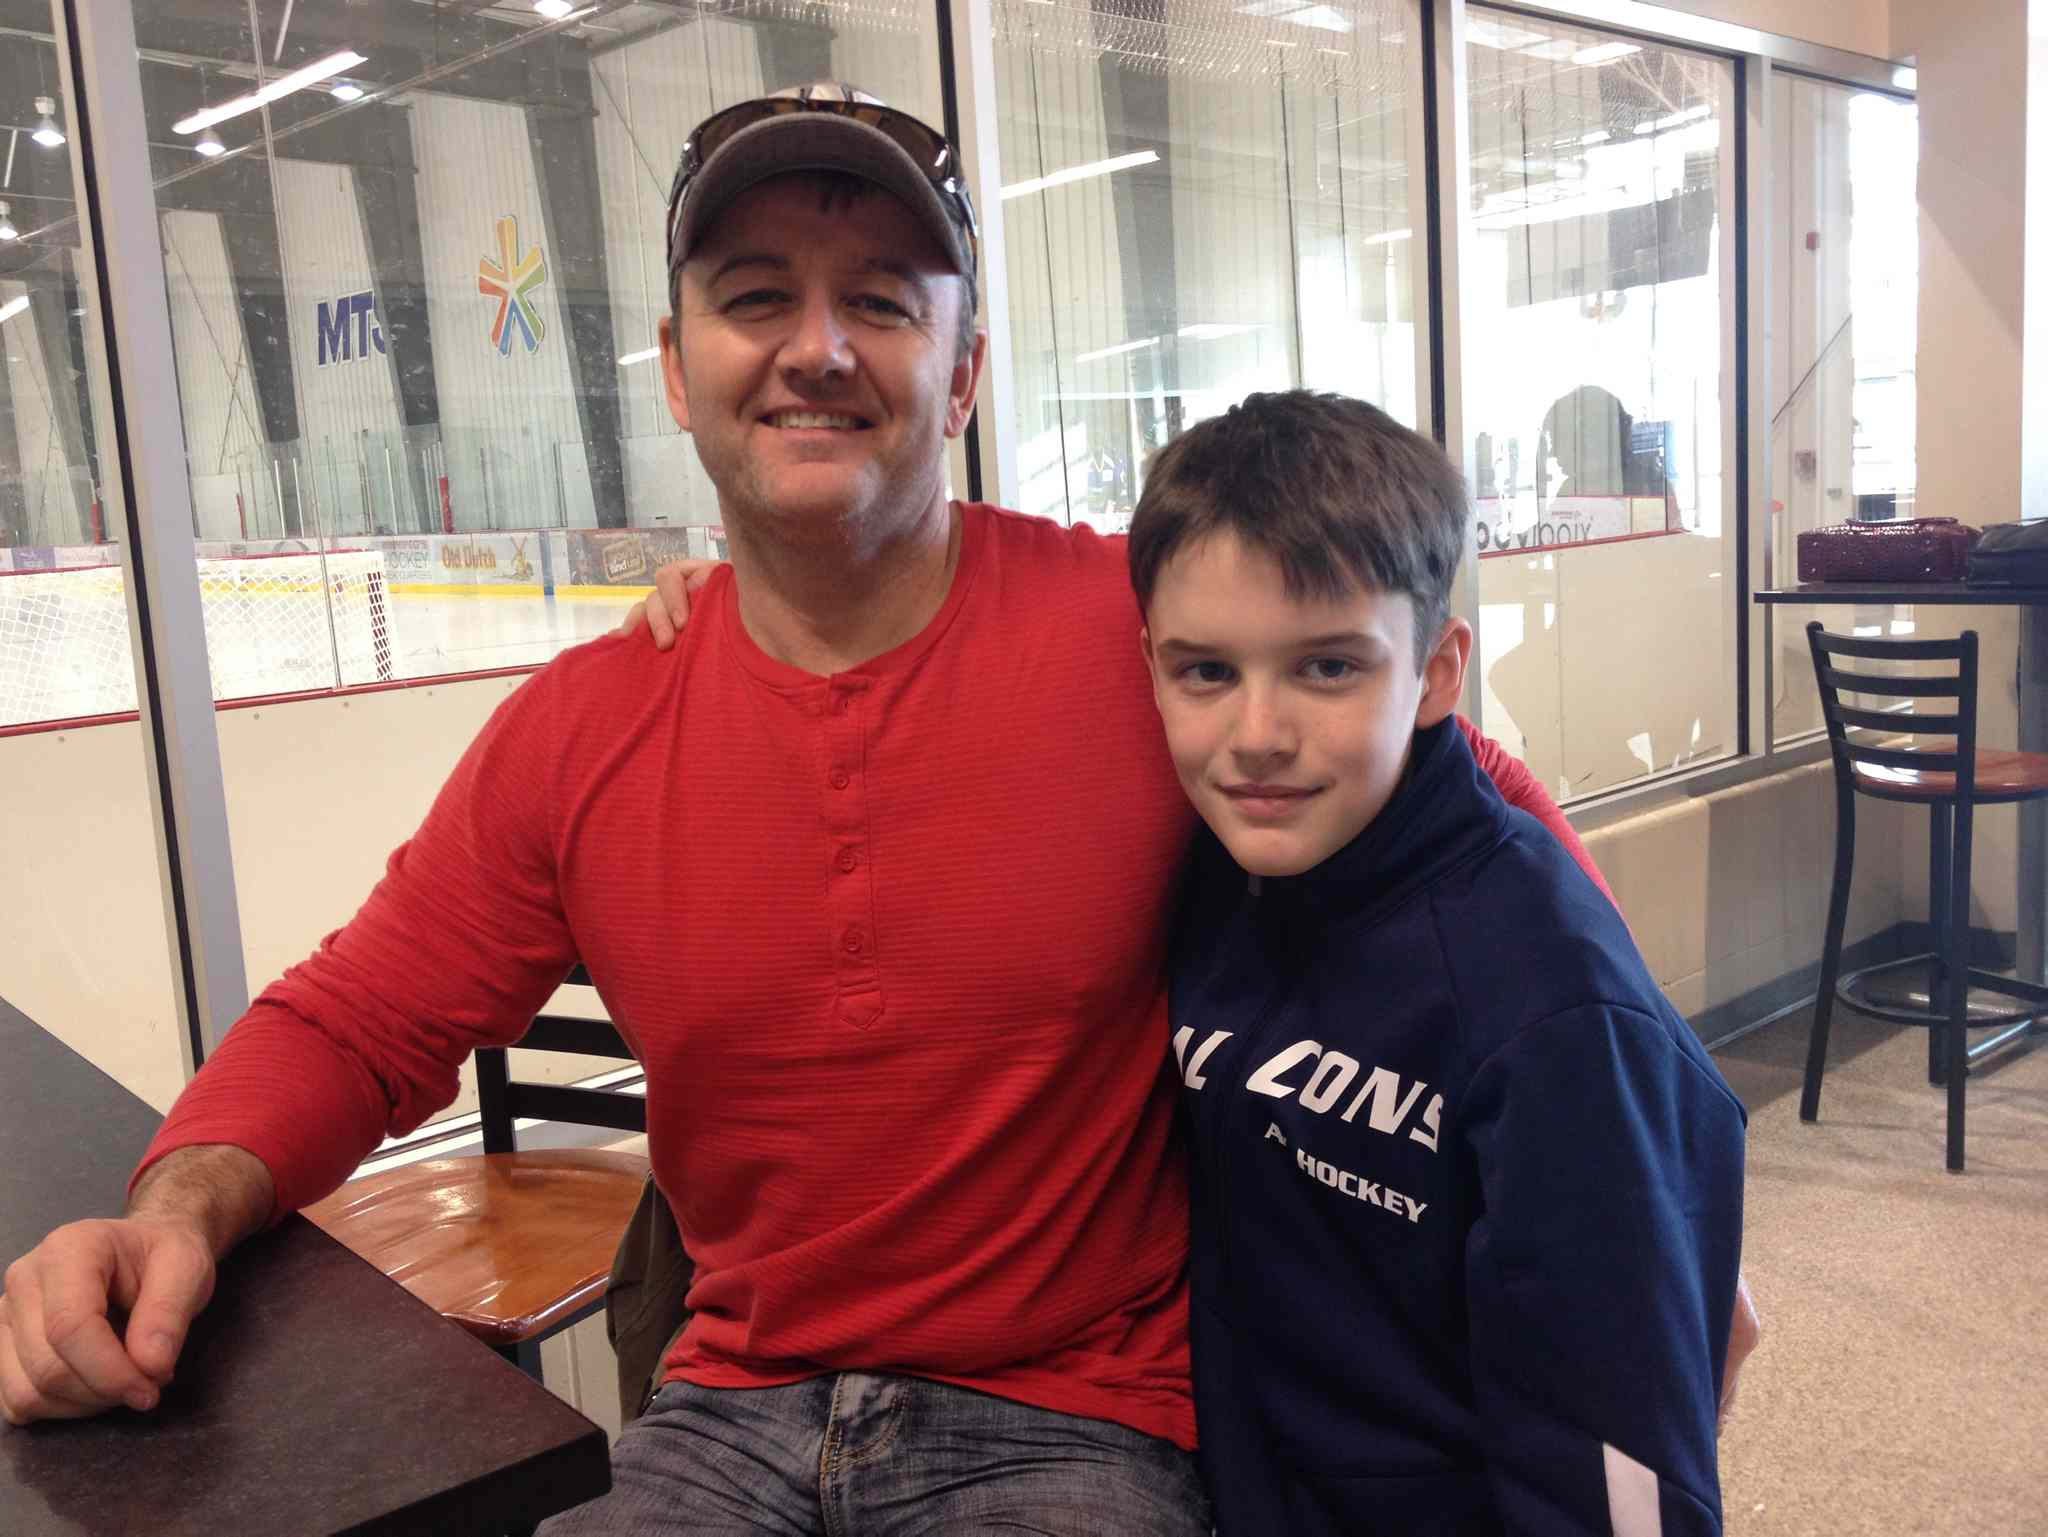 Rob Gibson and his son, Ethan, say Winnipeg's status as a 'hockey town' means fans have high expectations of their NHL team.